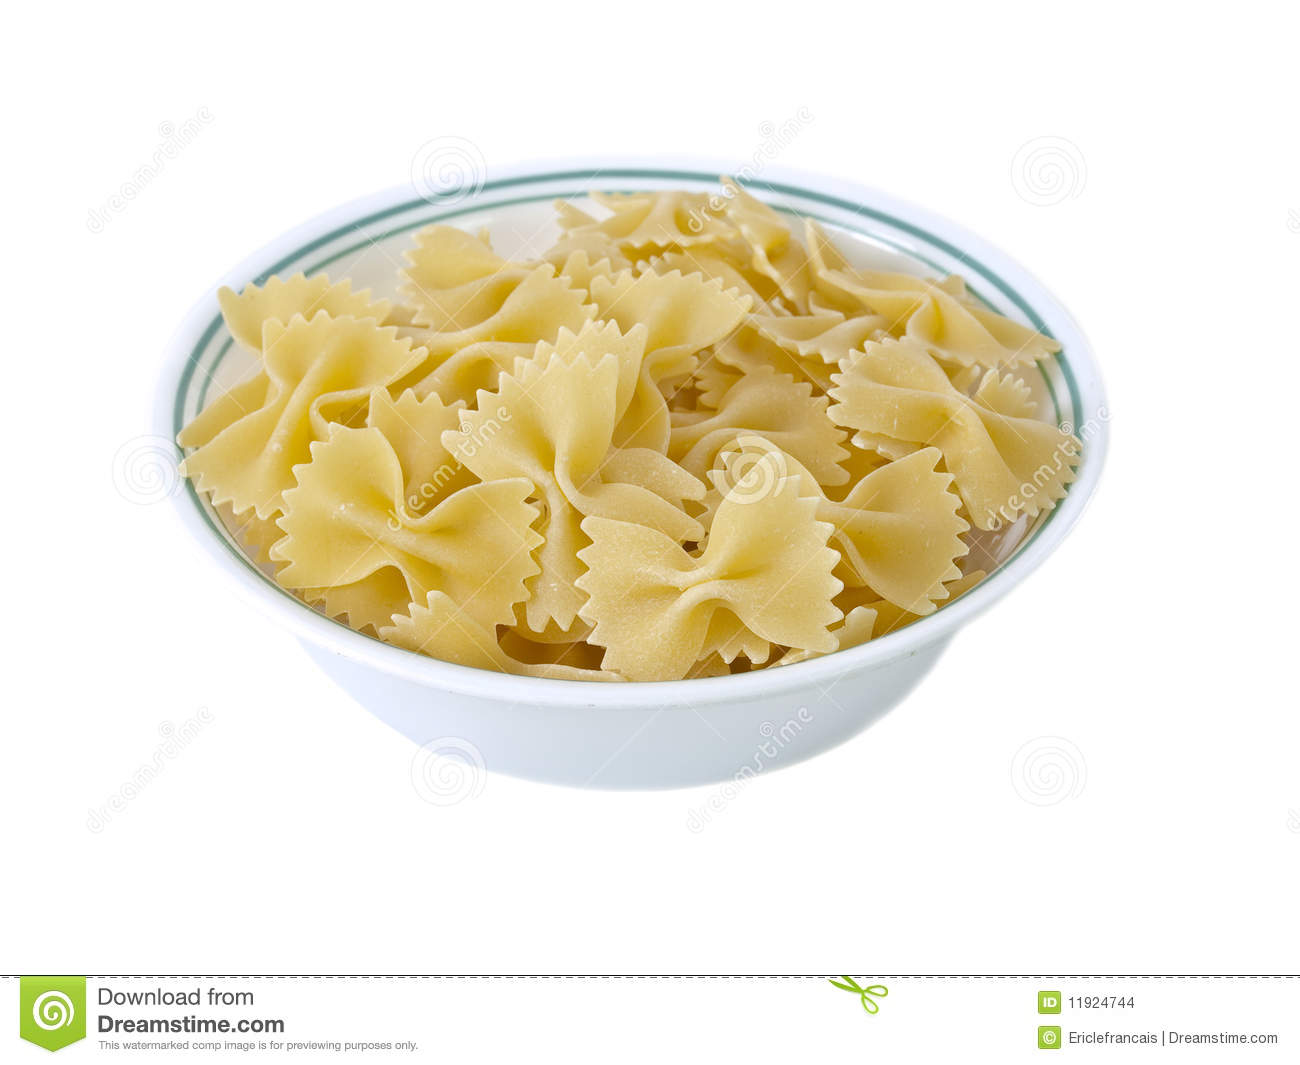 Run By Posting Five Facts Friday besides 9 Hilarious Simpsons Characters That Are Actually Very Sad likewise Imagem De Stock Desenhos Animados Um Padeiro   Pizza Image33242231 besides Stock Images Pasta Bowl Image11924744 in addition Stock Photo Single Ear Wheat Isolated White Image21447380. on cartoon cereal